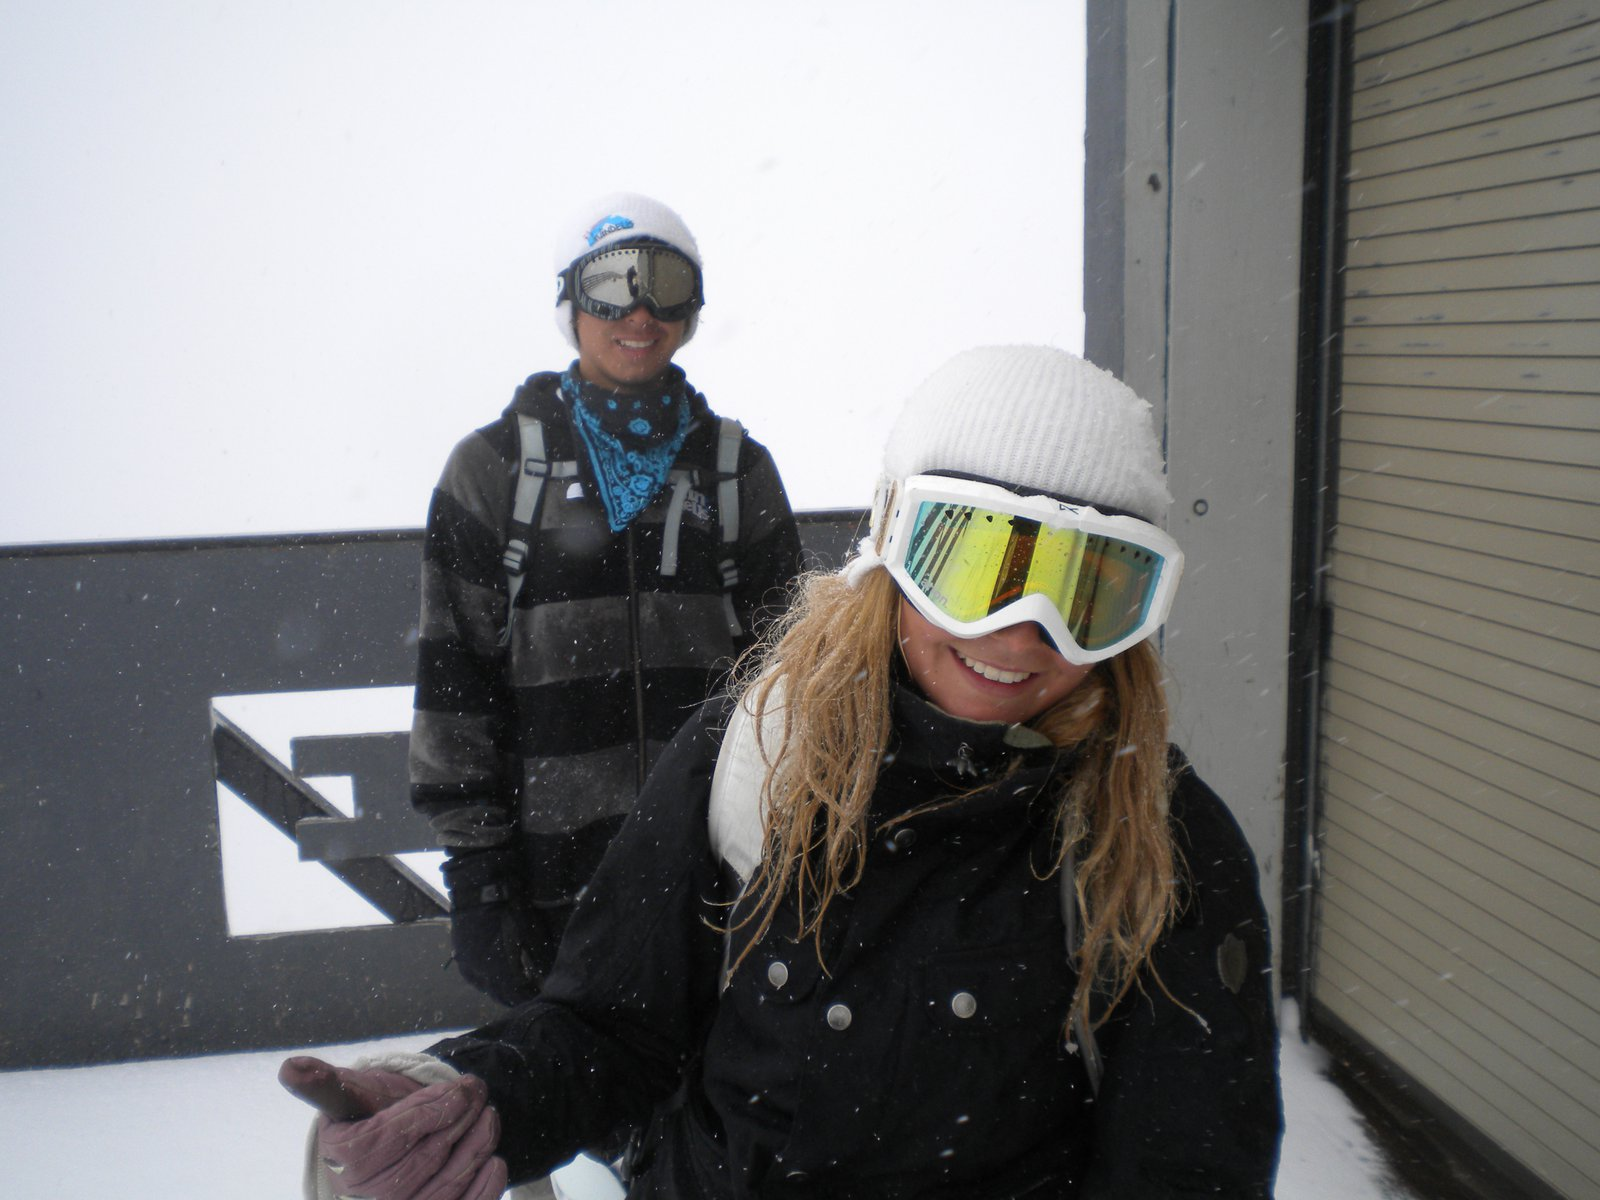 Alex and brie at palmer lift